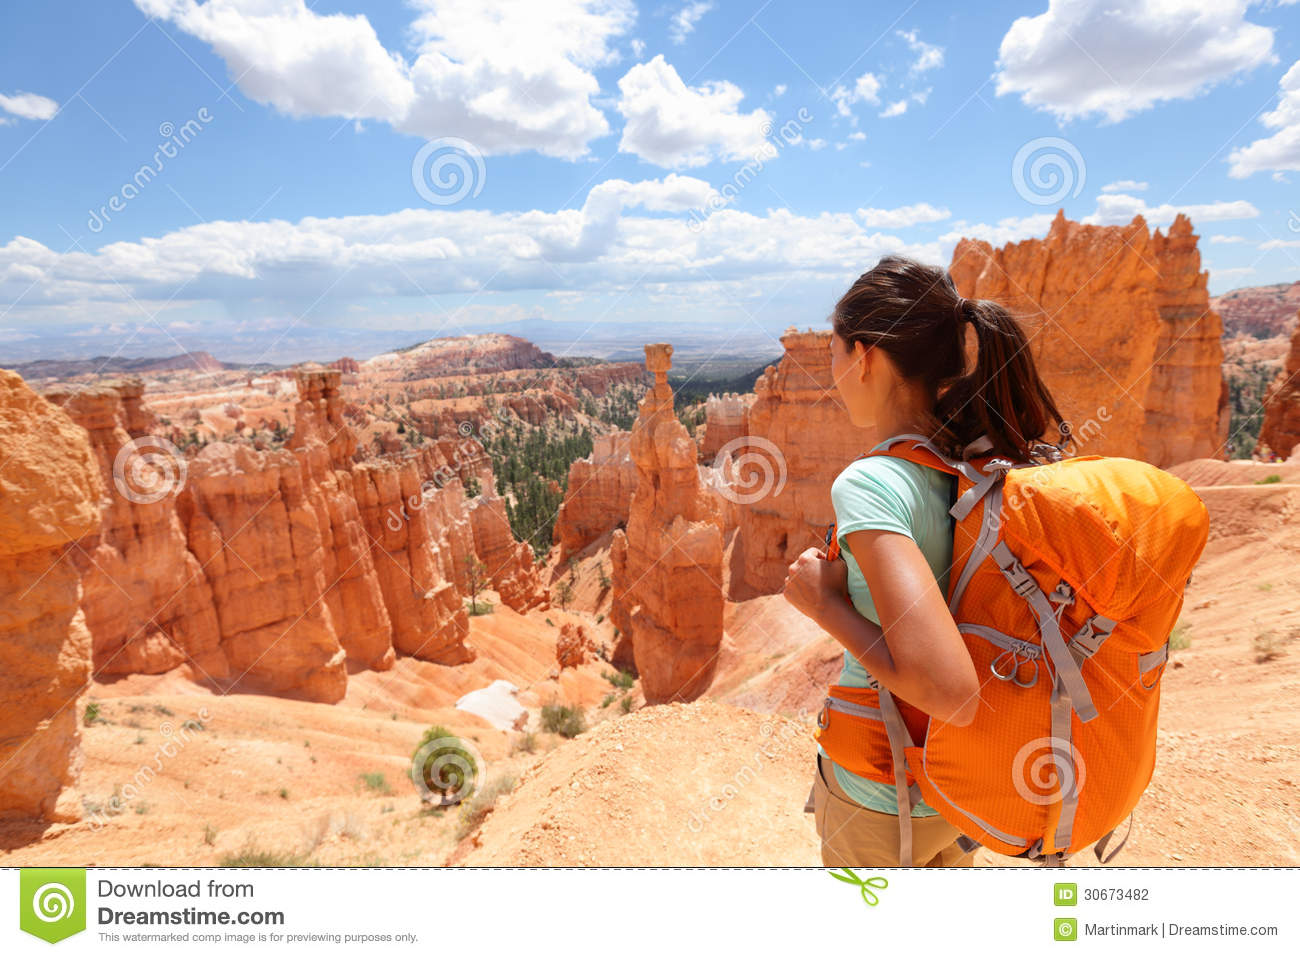 bryce canyon cougar women Cougar canyon trail is a hiking adventure located in or near borrego springs, ca enjoy & research borrego springs, california with trail guides, topo maps, photos, reviews & gps routes on trailscom.